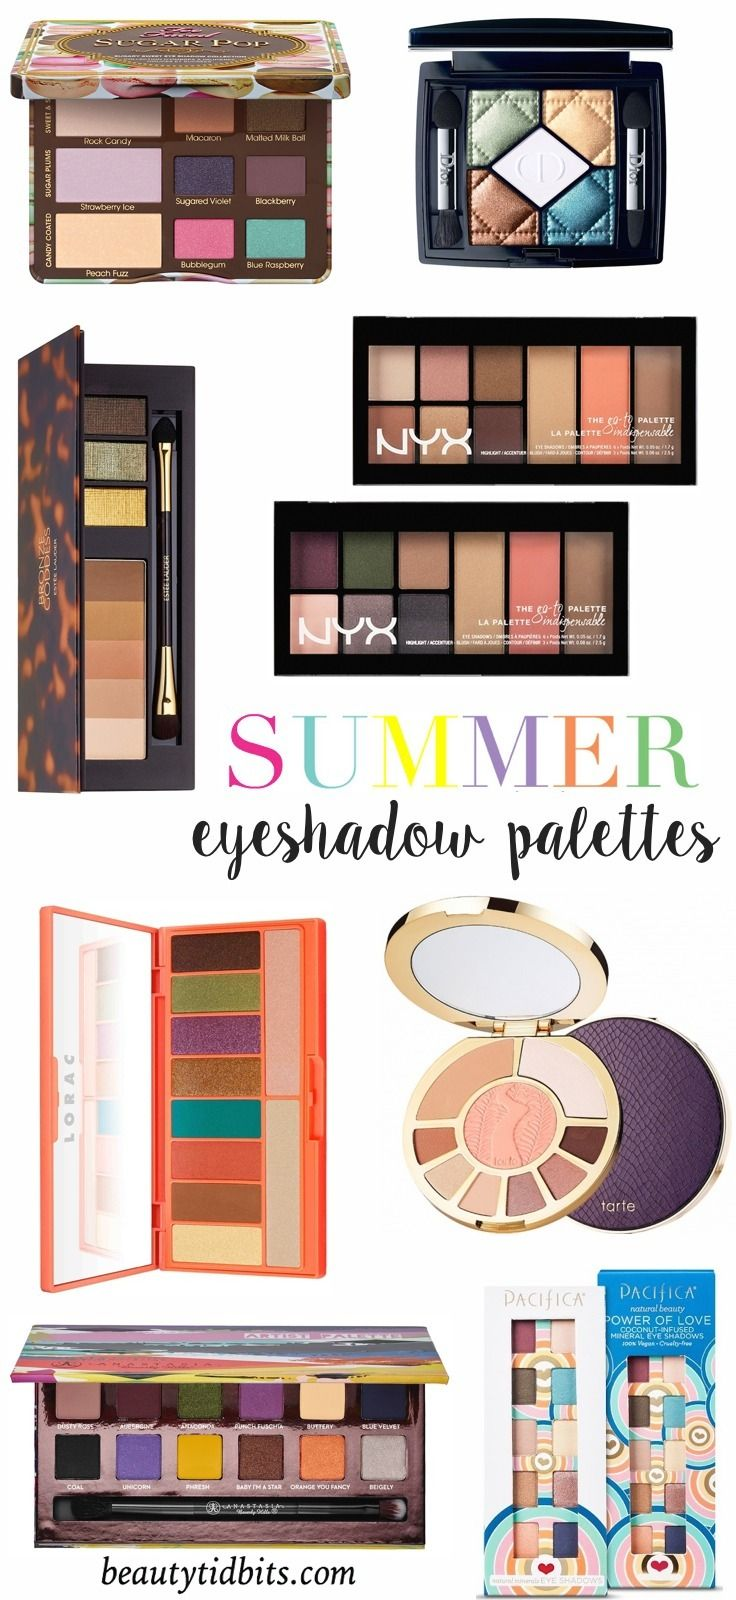 Shades Of Summer Best Eyeshadow Palettes To Take You From Day To